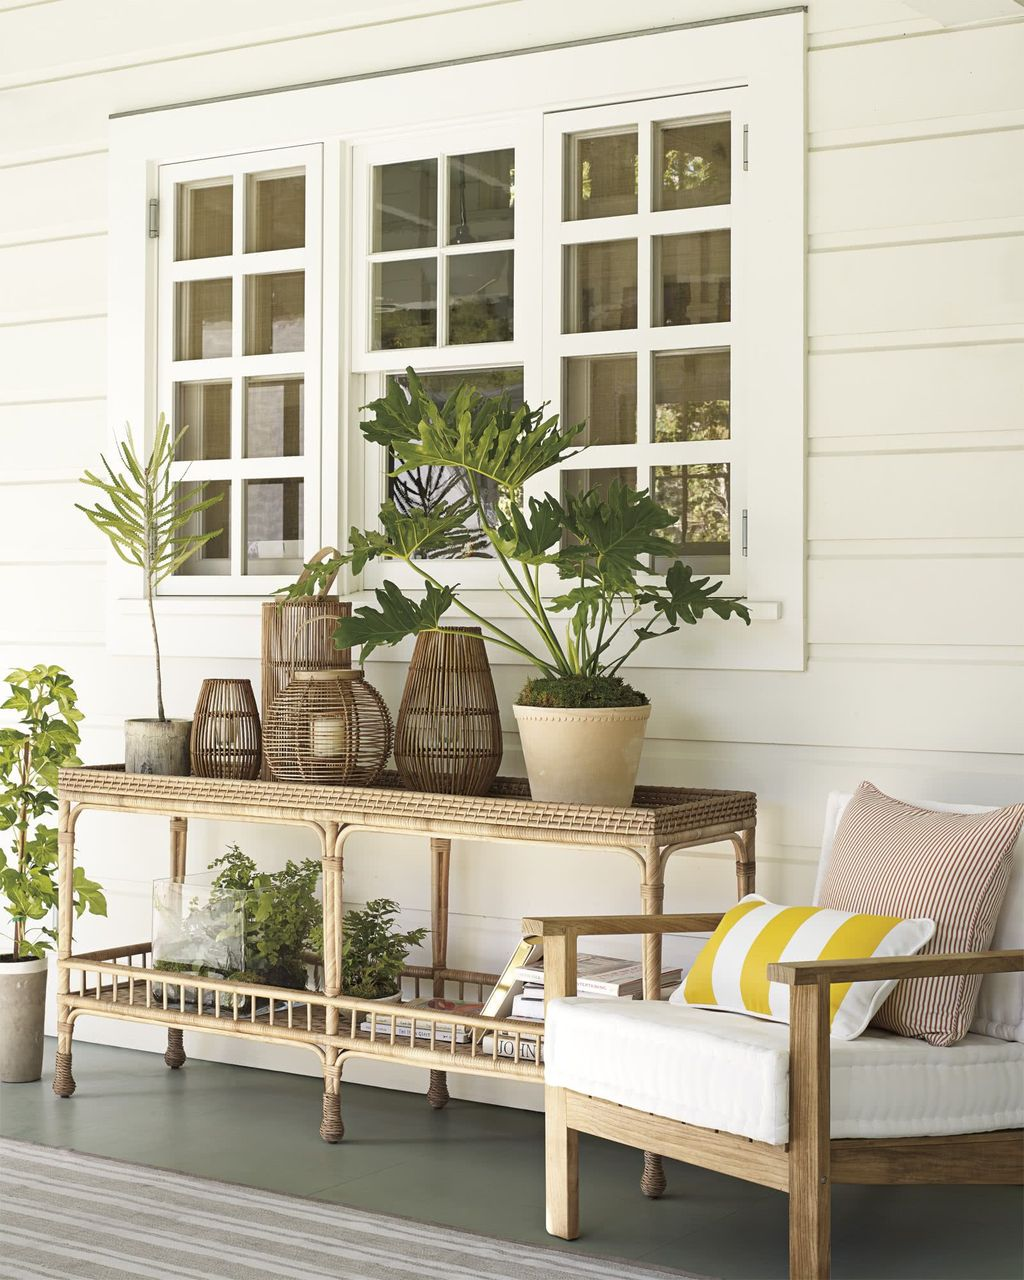 Lovely Rustic Porch Ideas To Beautify Your Home 23